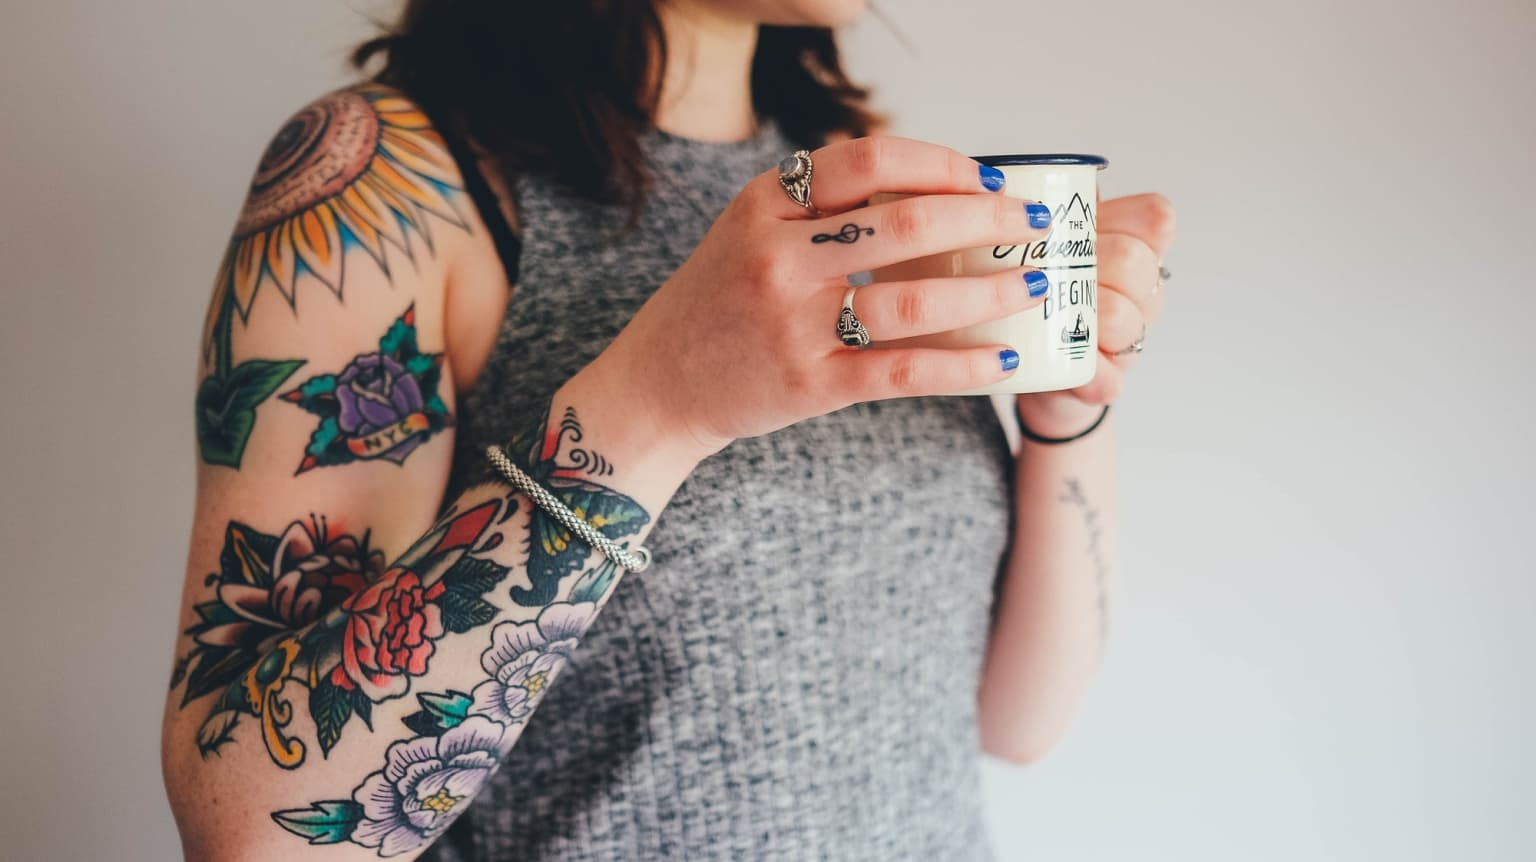 Tattoo Parlors Are Bragging About Their 'Healthy' Vegan Tattoos